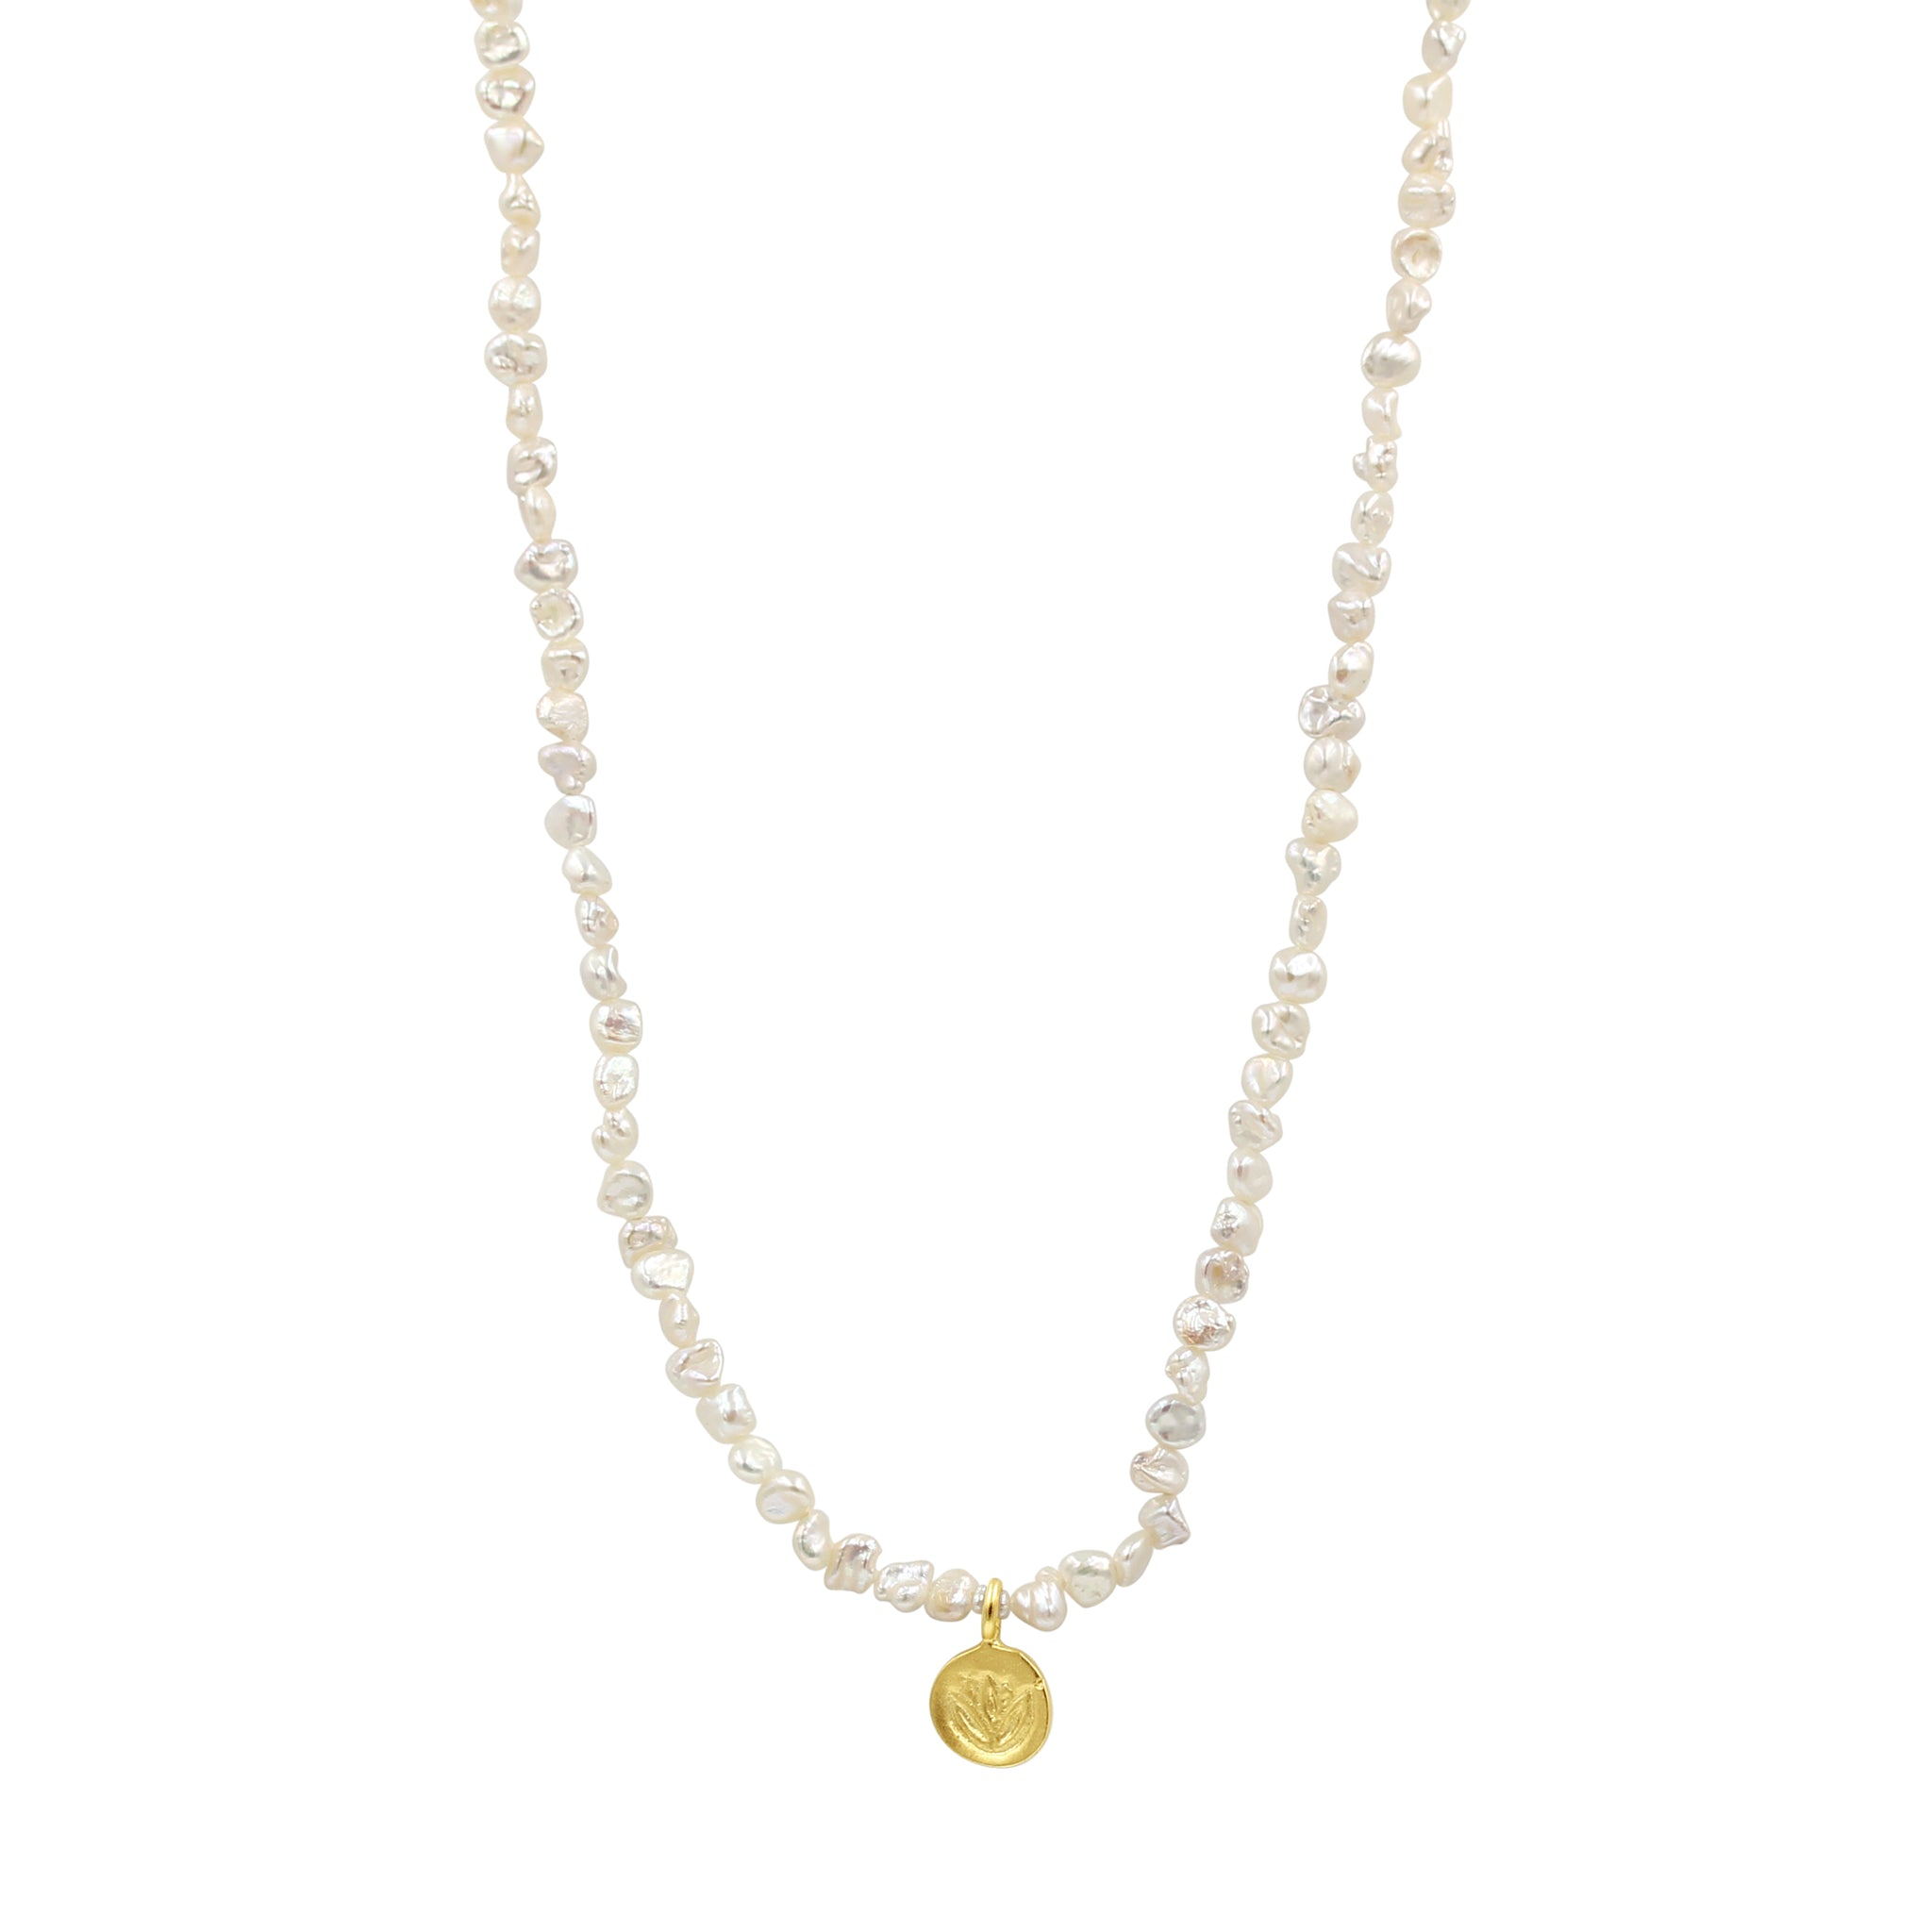 Journey Pearl Lotus Necklace - Sati Gems Hawaii